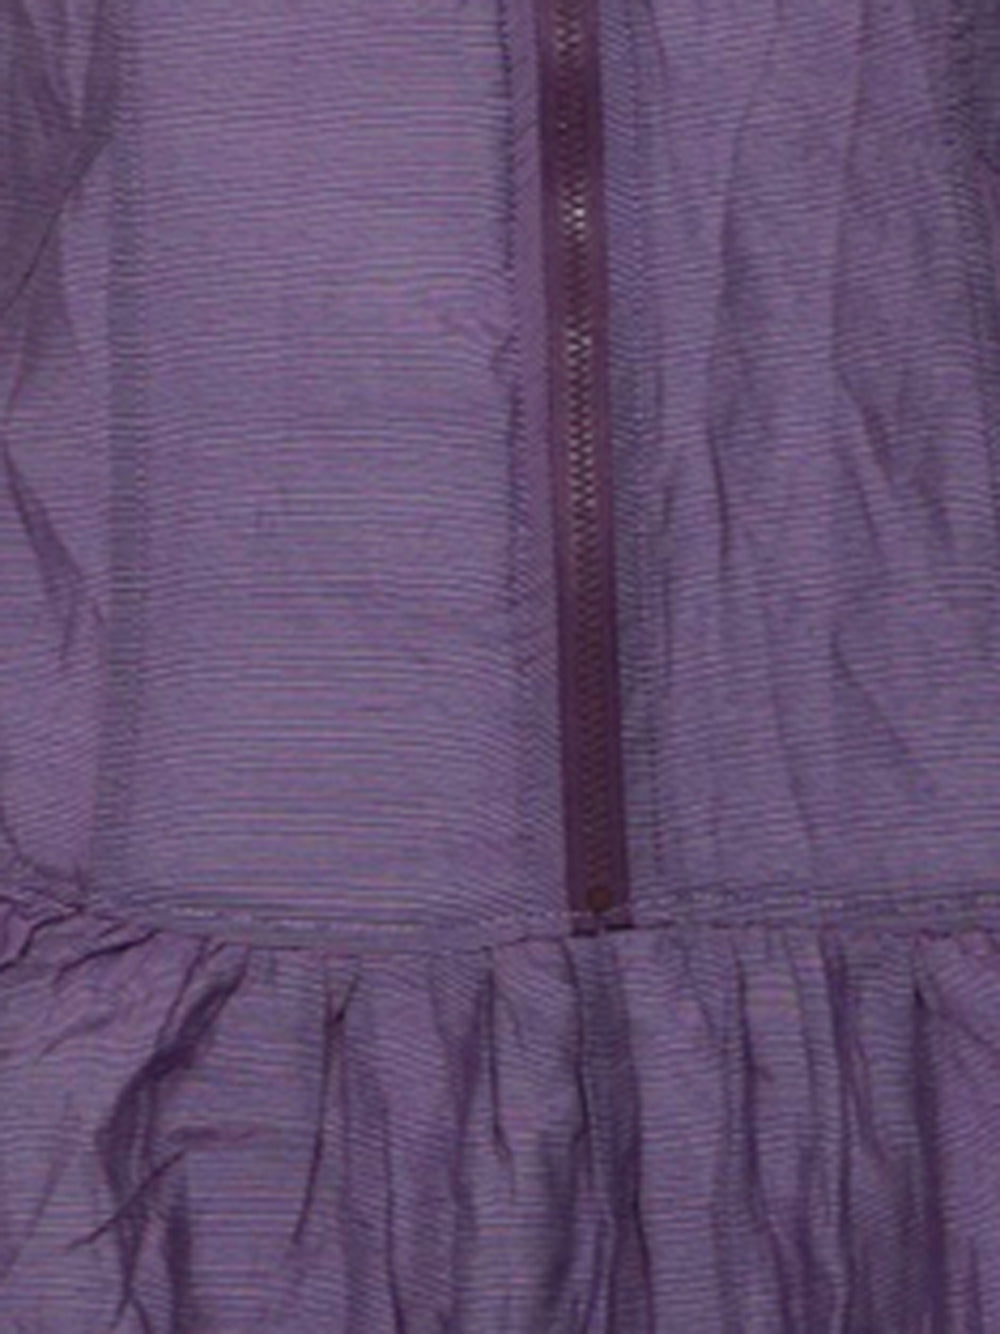 Detail photo of Preloved franstyle Violet Woman's dress - size 8/S